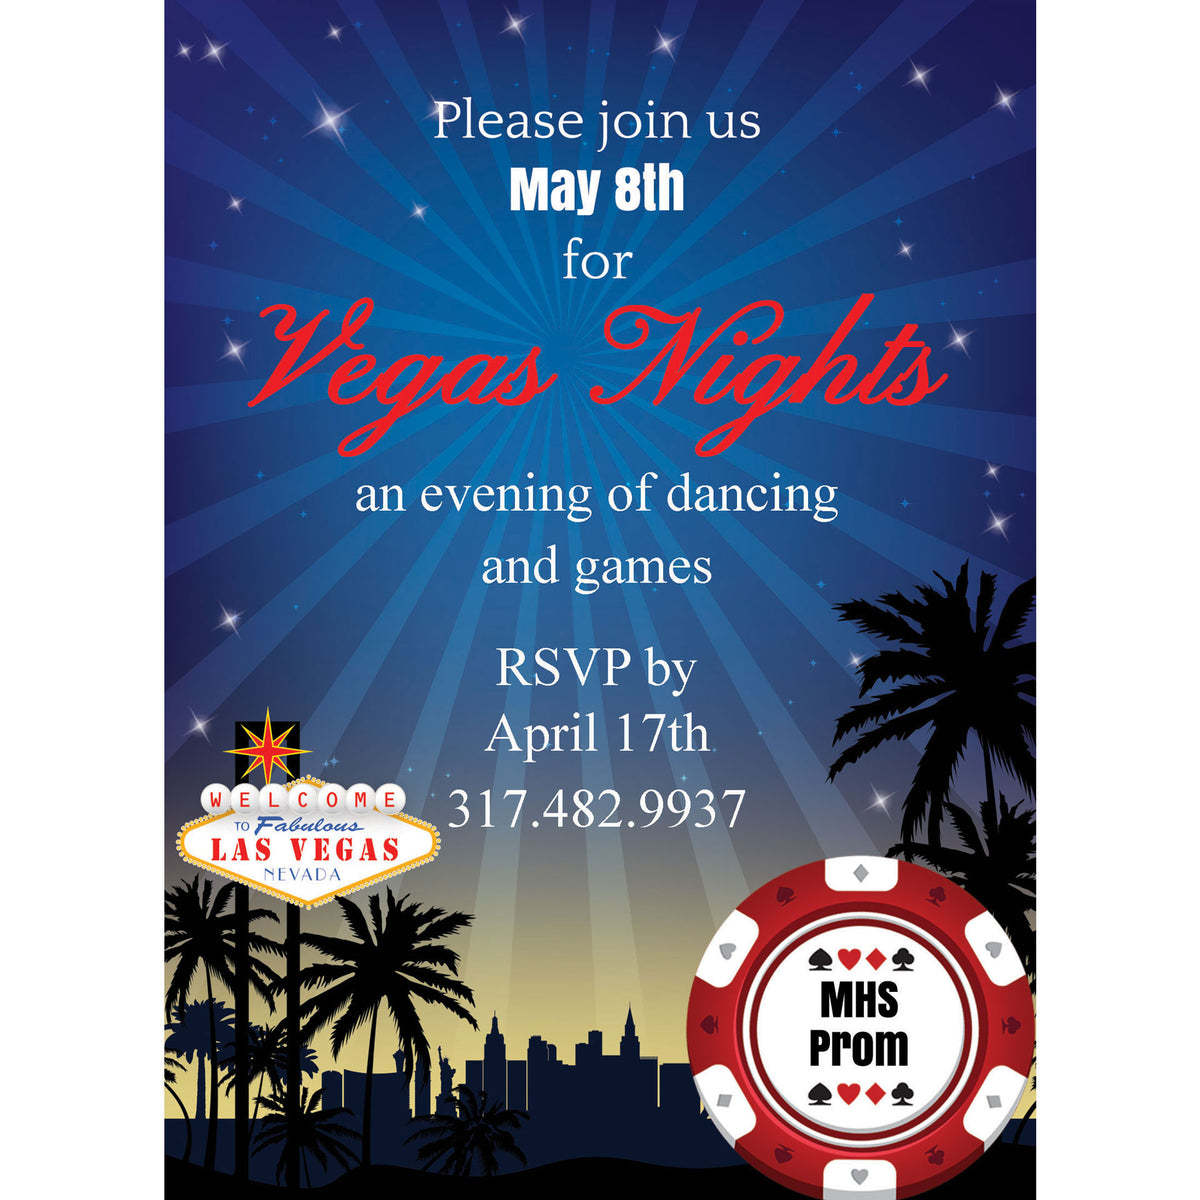 Vegas Nights Personalized Invitations